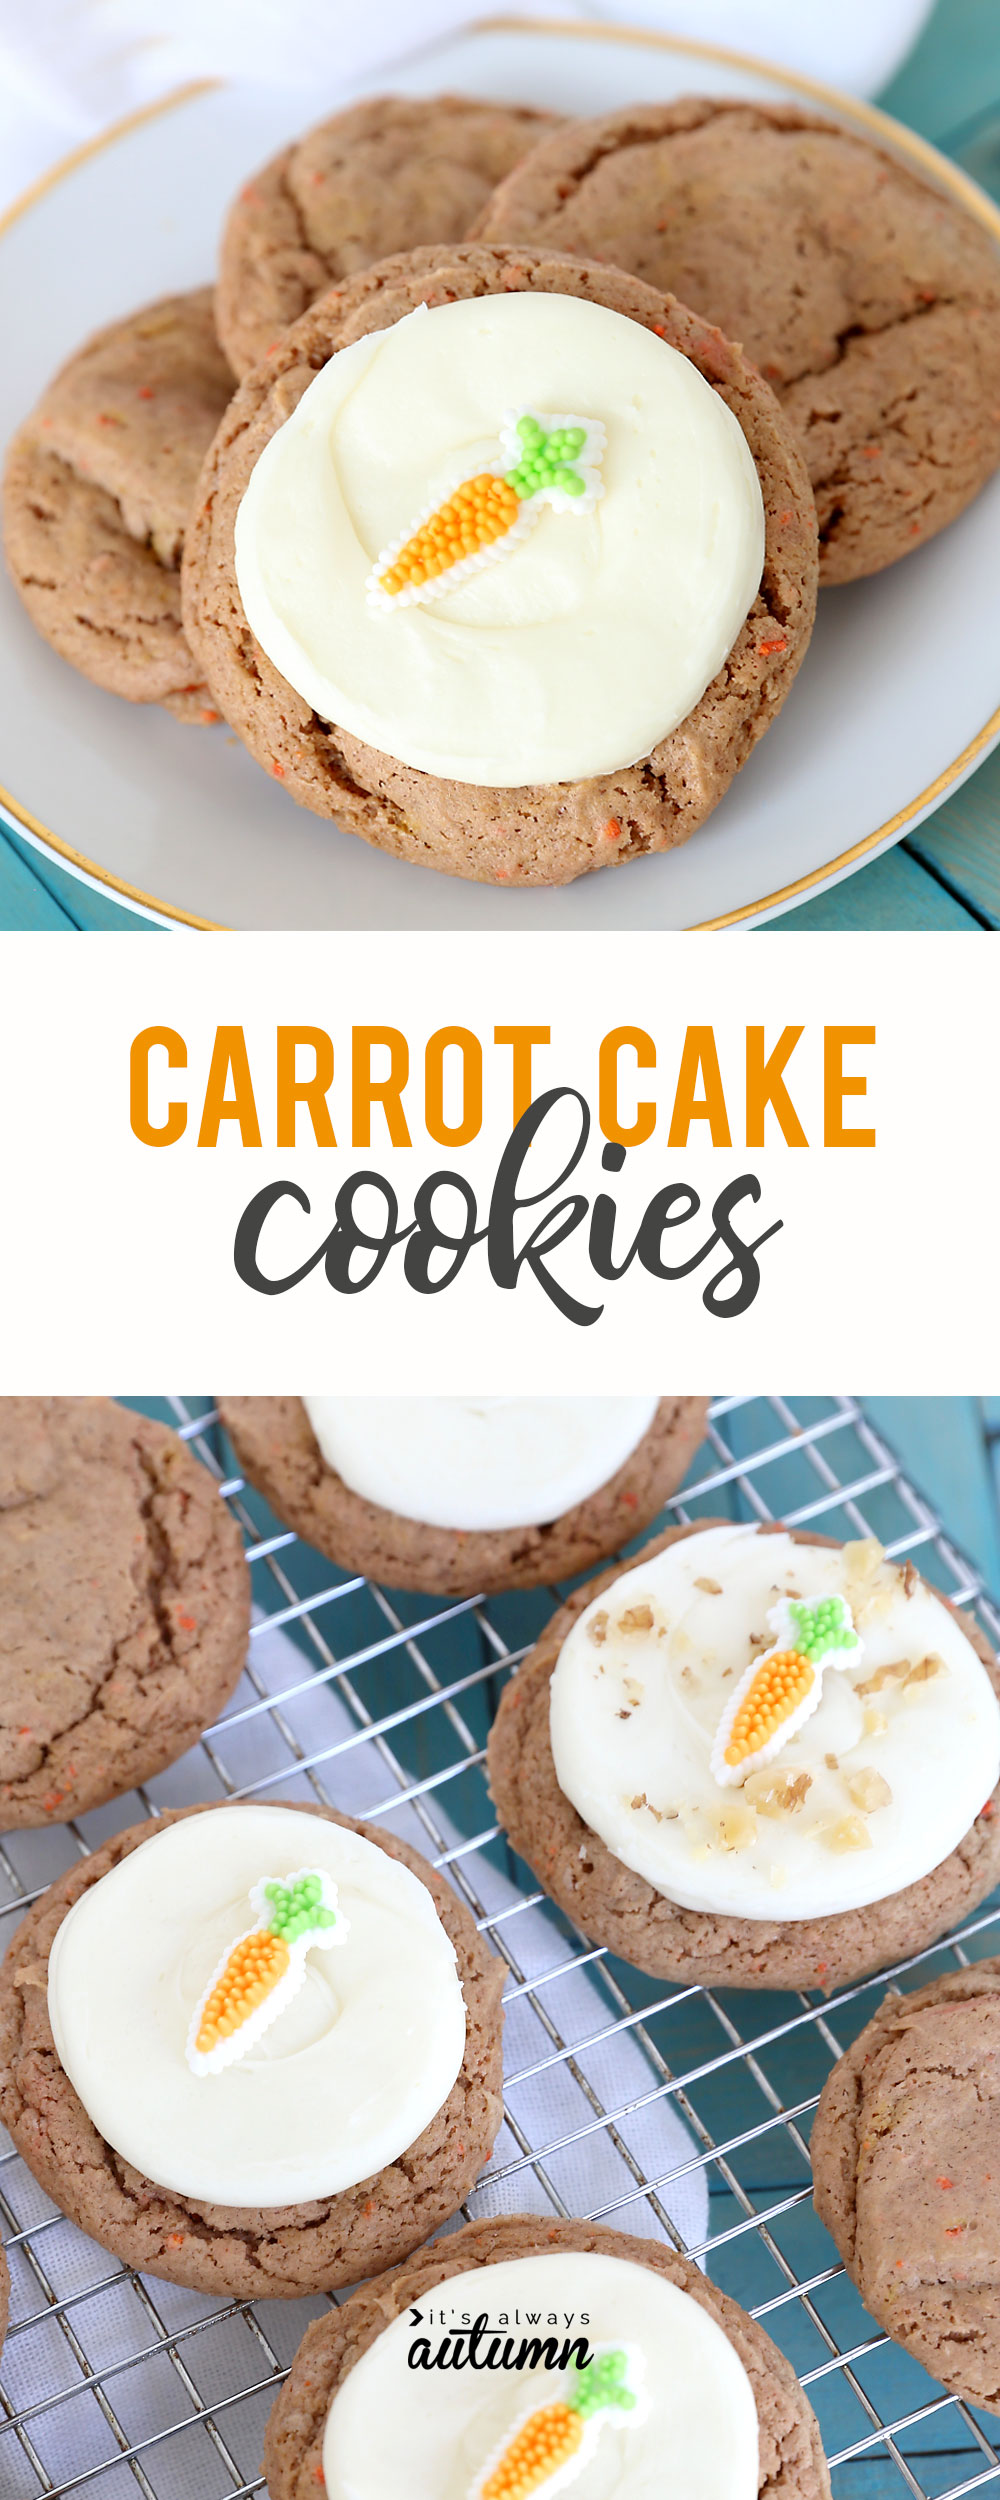 These carrot cake cookies bake up so soft and delicious! And they're super fast because you start with a cake mix.